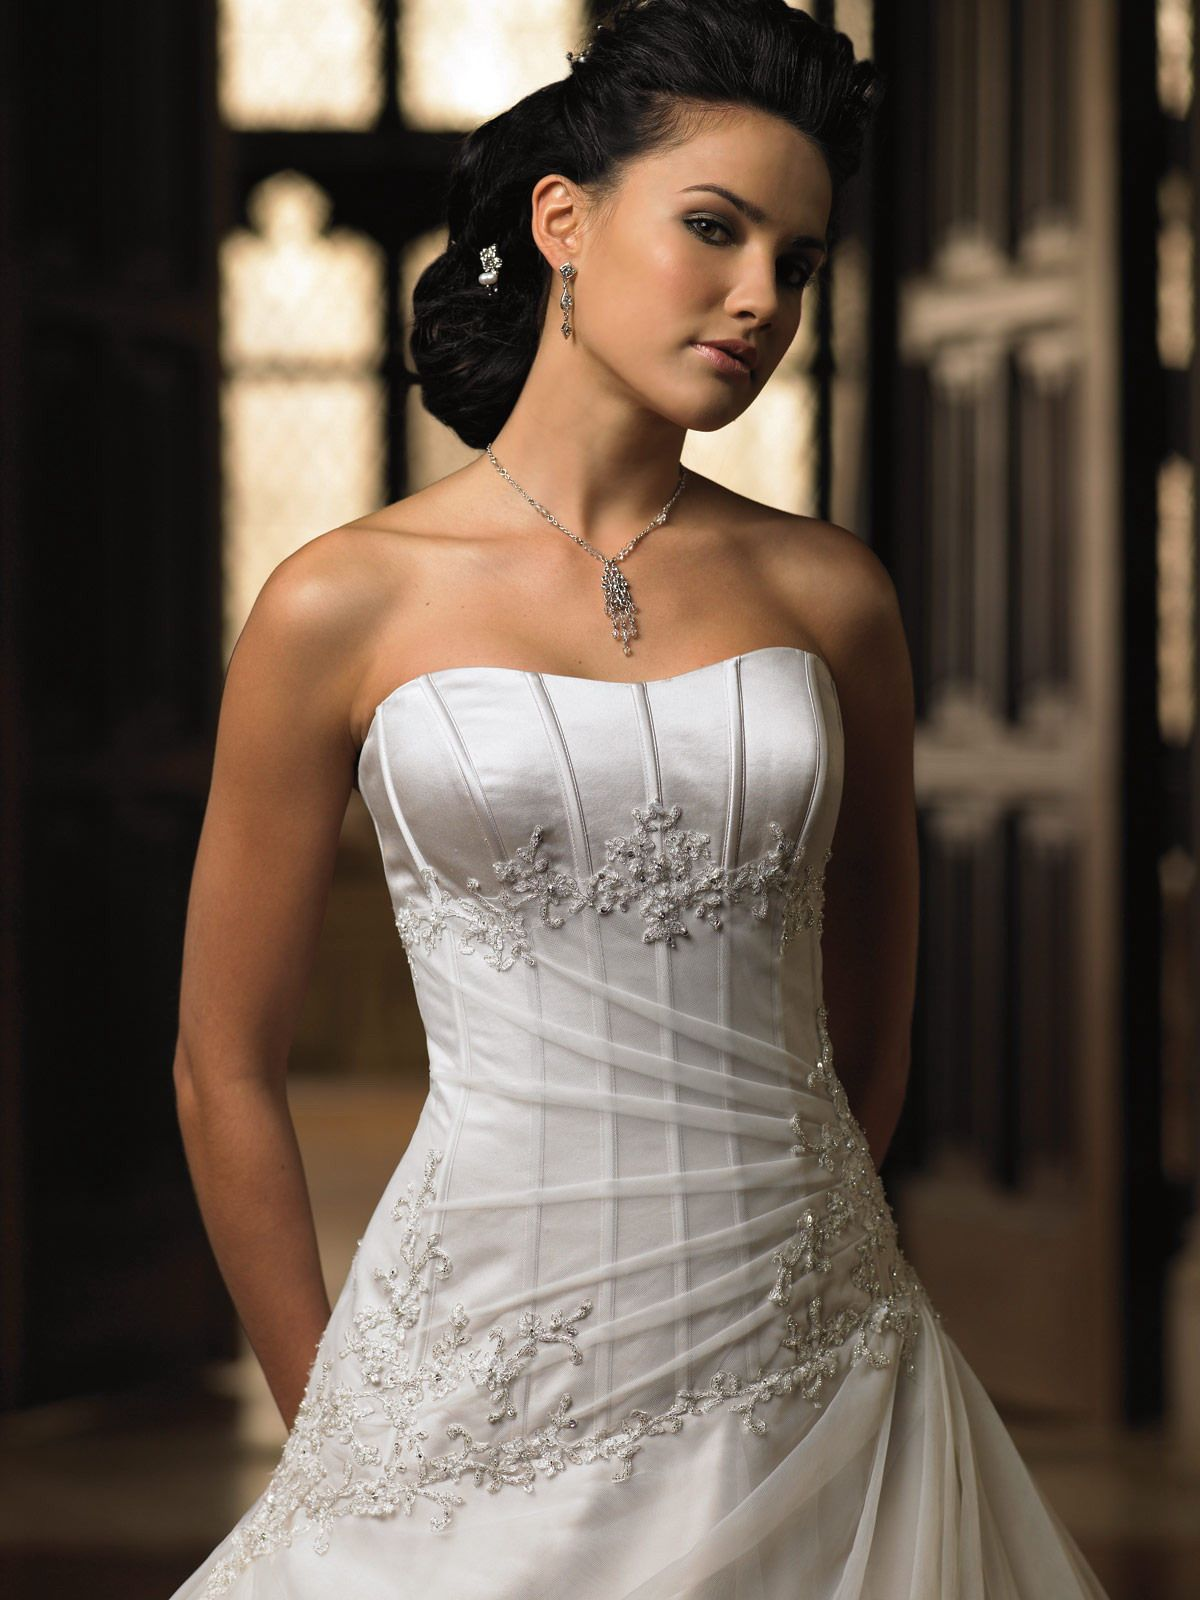 Mon cheri bridal gown style leecy bridal dress pinterest